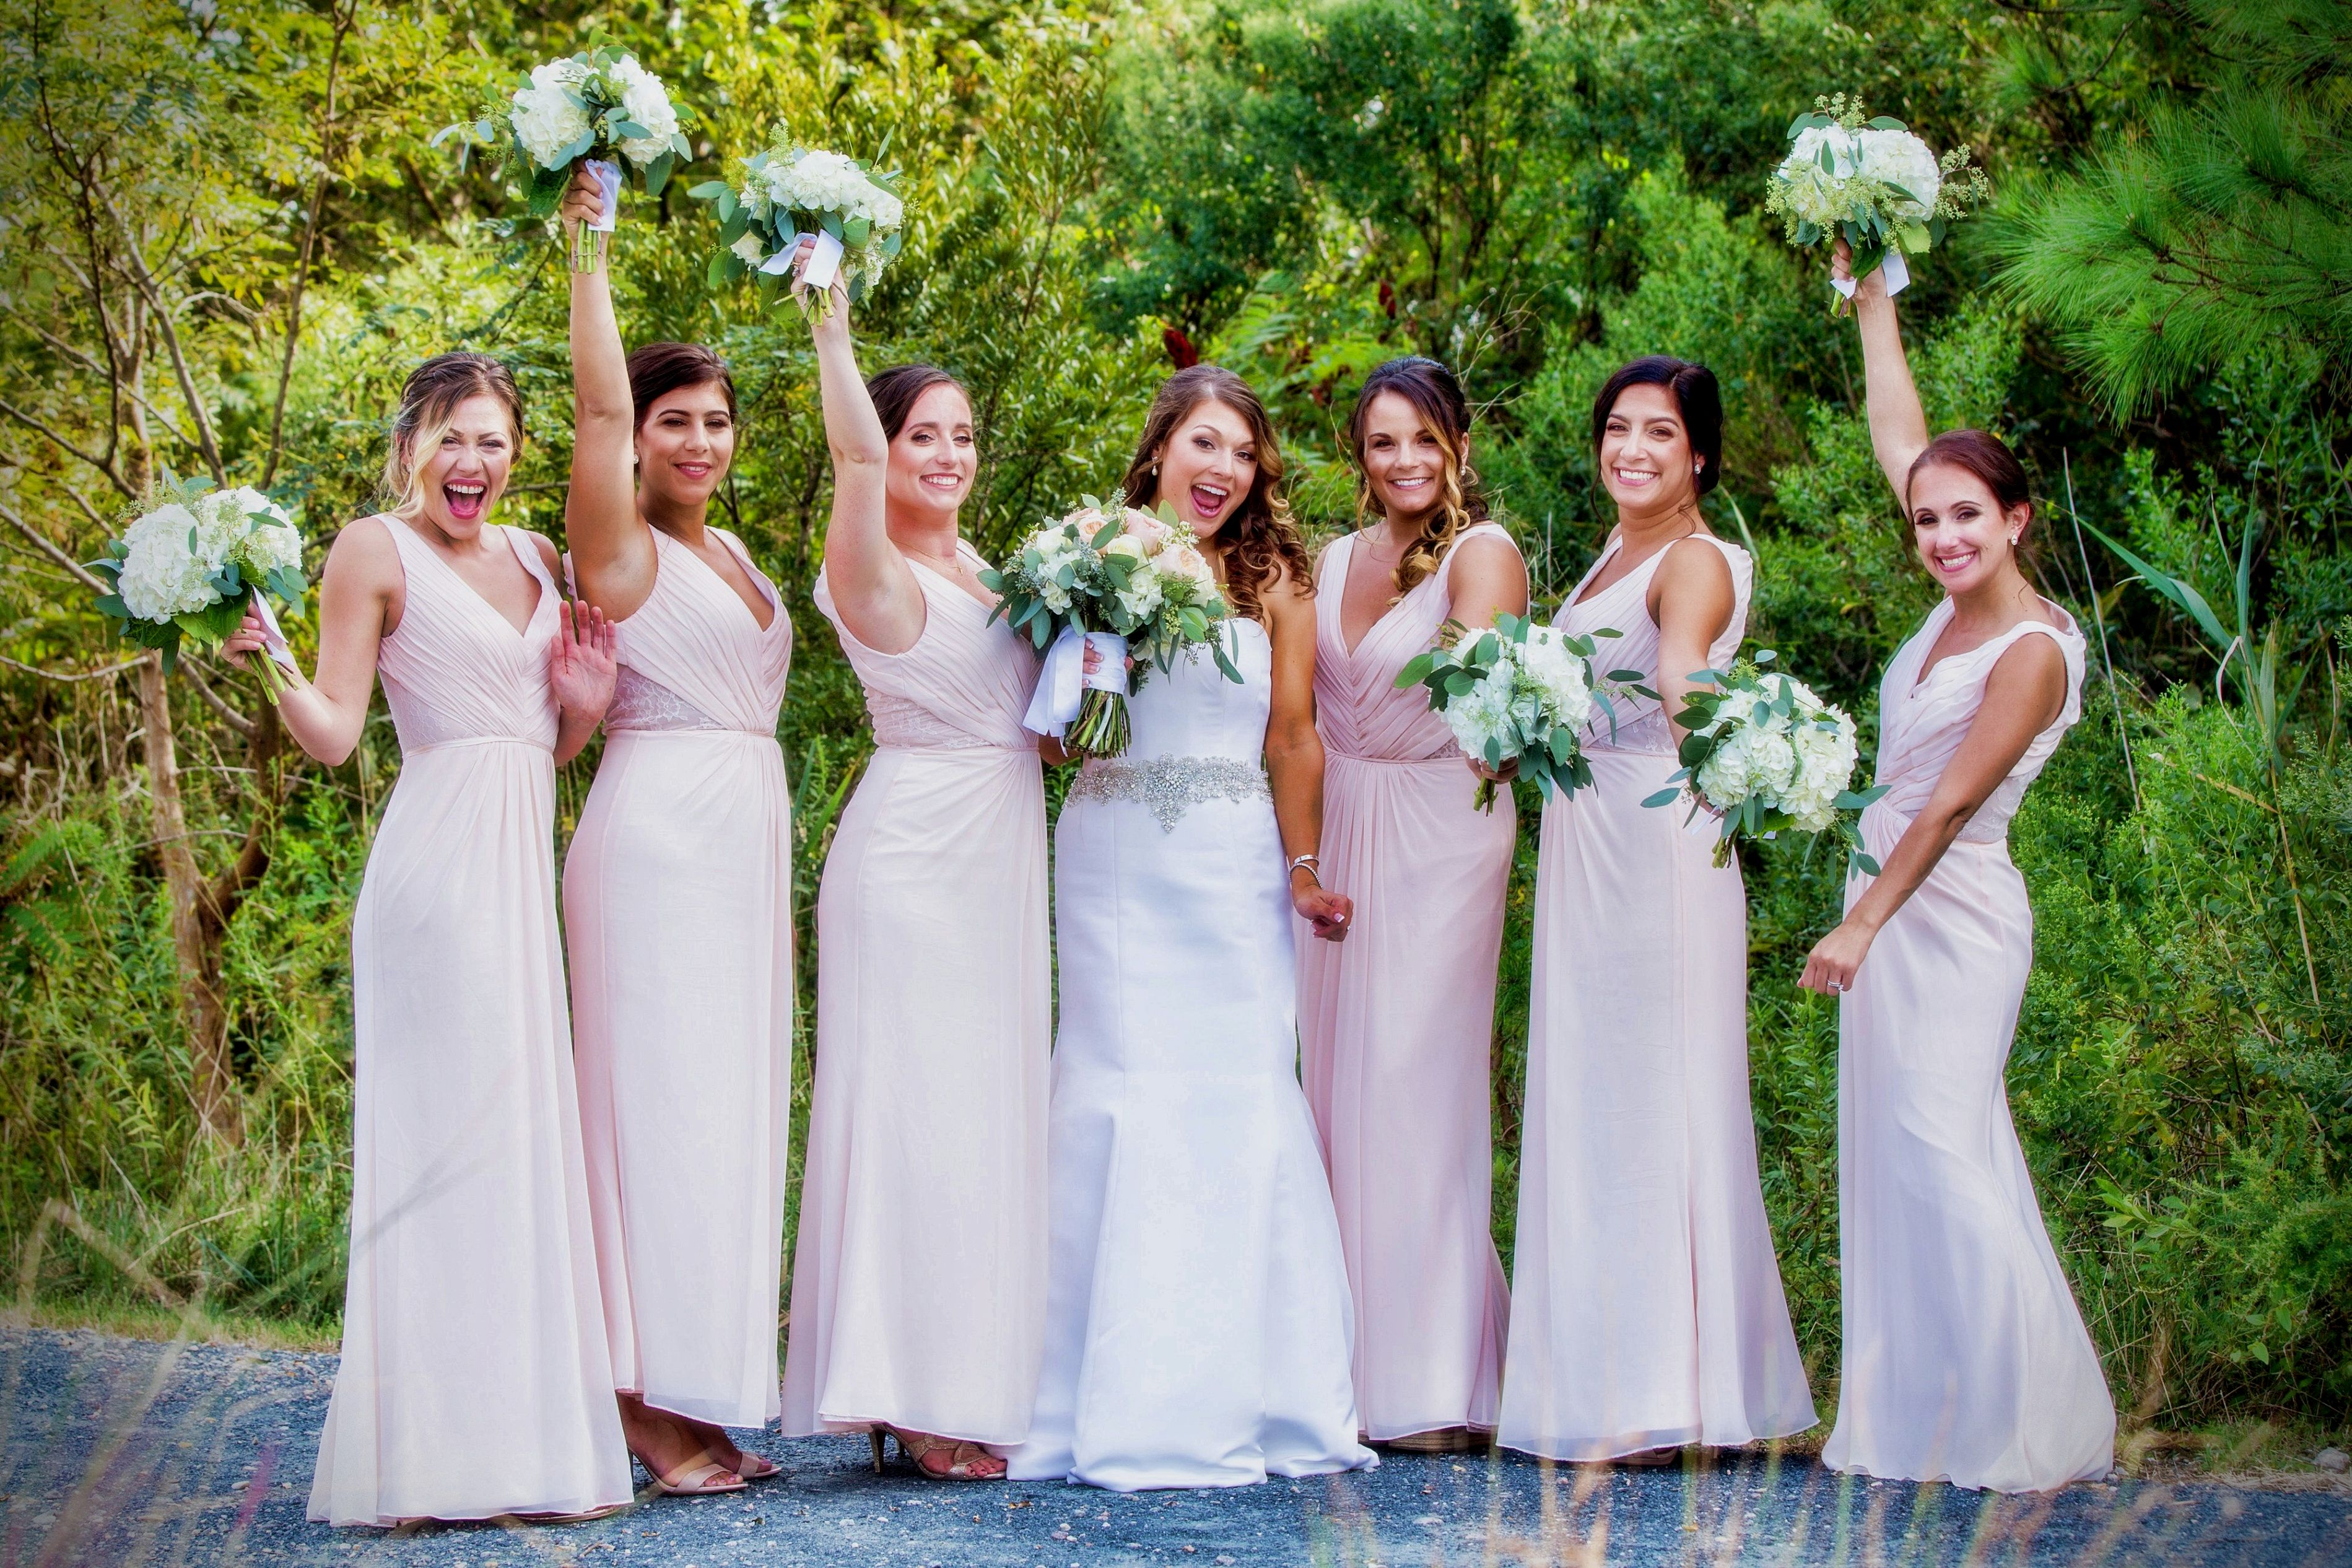 Bridesmaid Dresses For Style Conscious Attendants